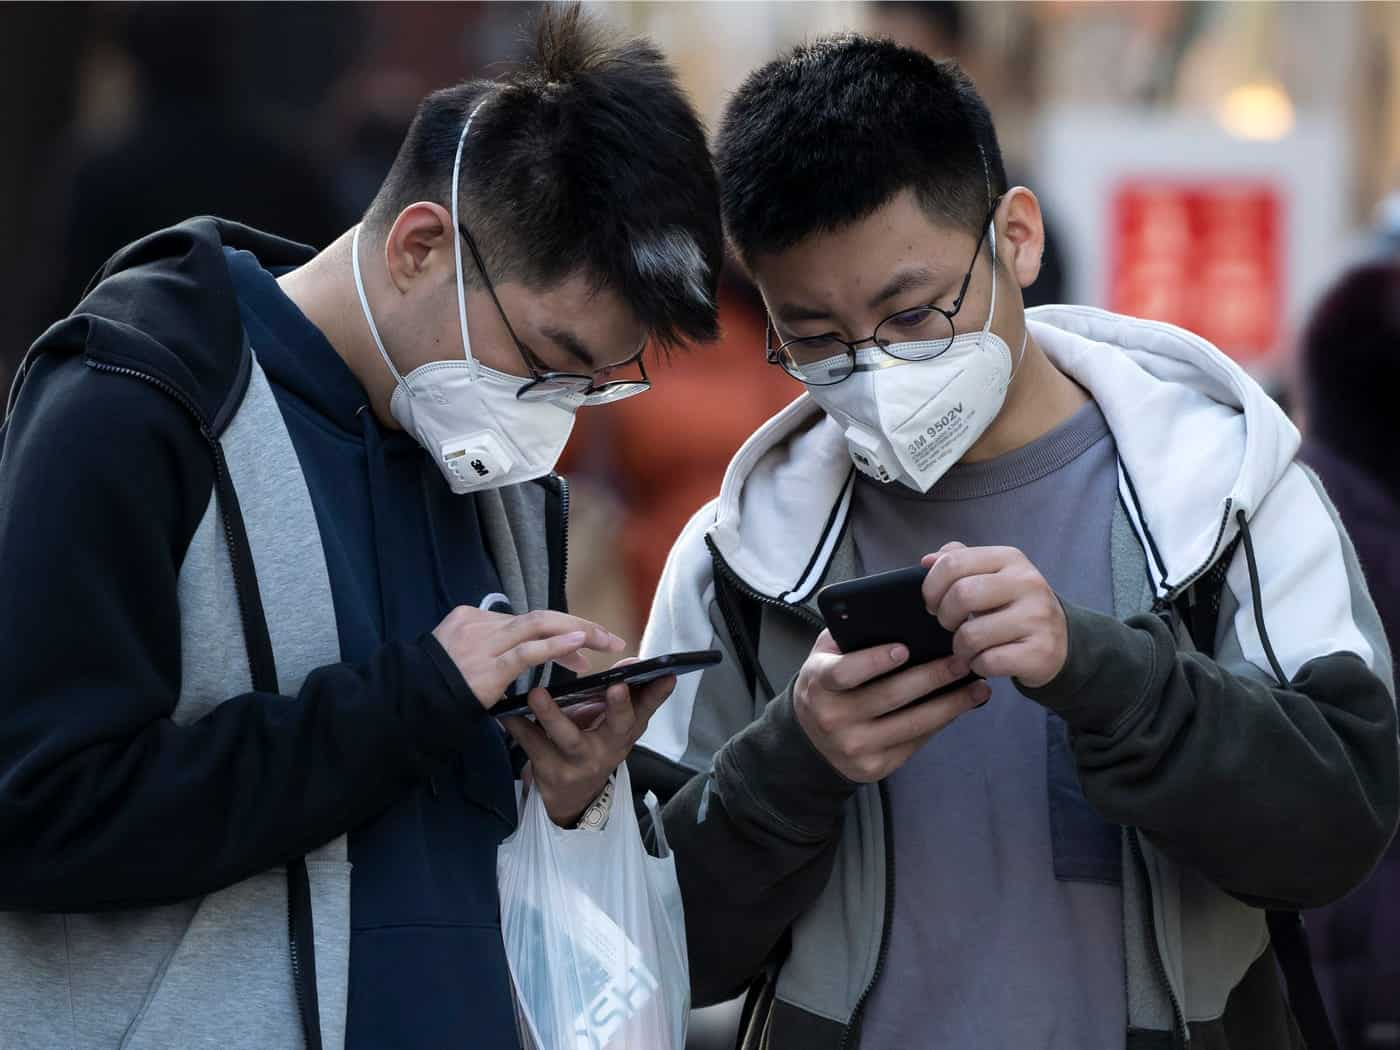 Coronavirus Cited For Sharp Drop In Smartphone, PC Shipments 02/11/2020